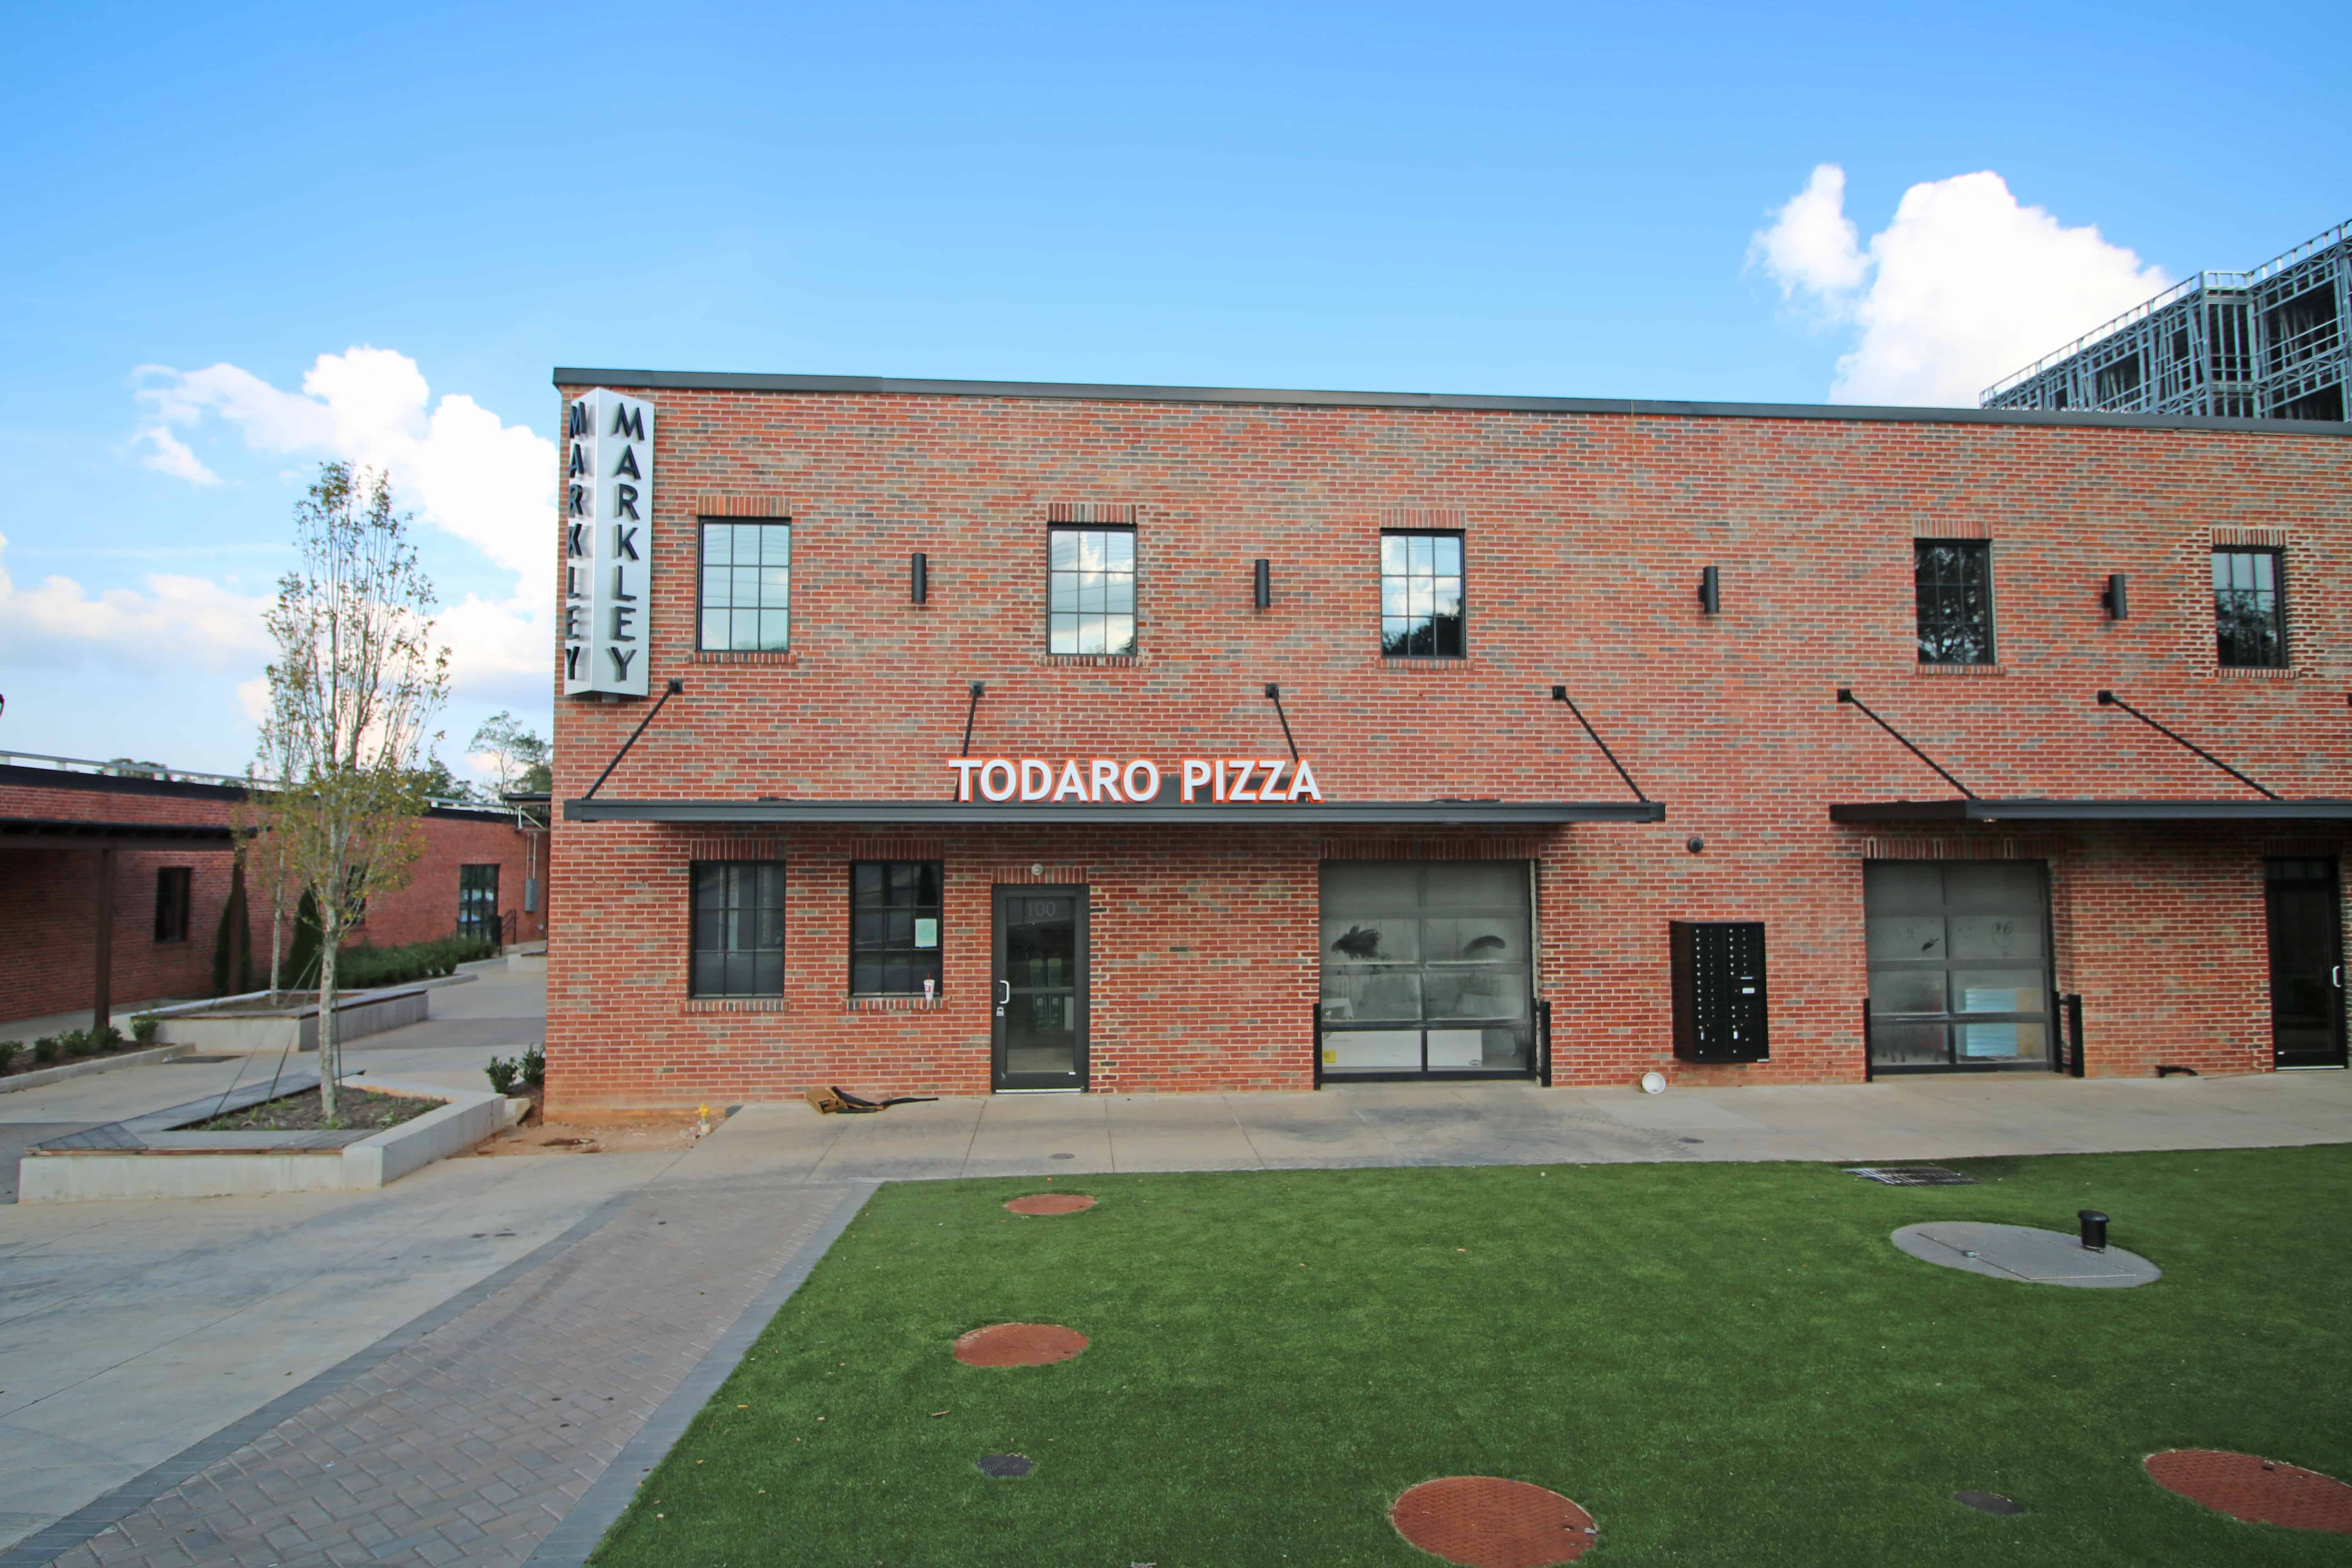 Todaro Pizza